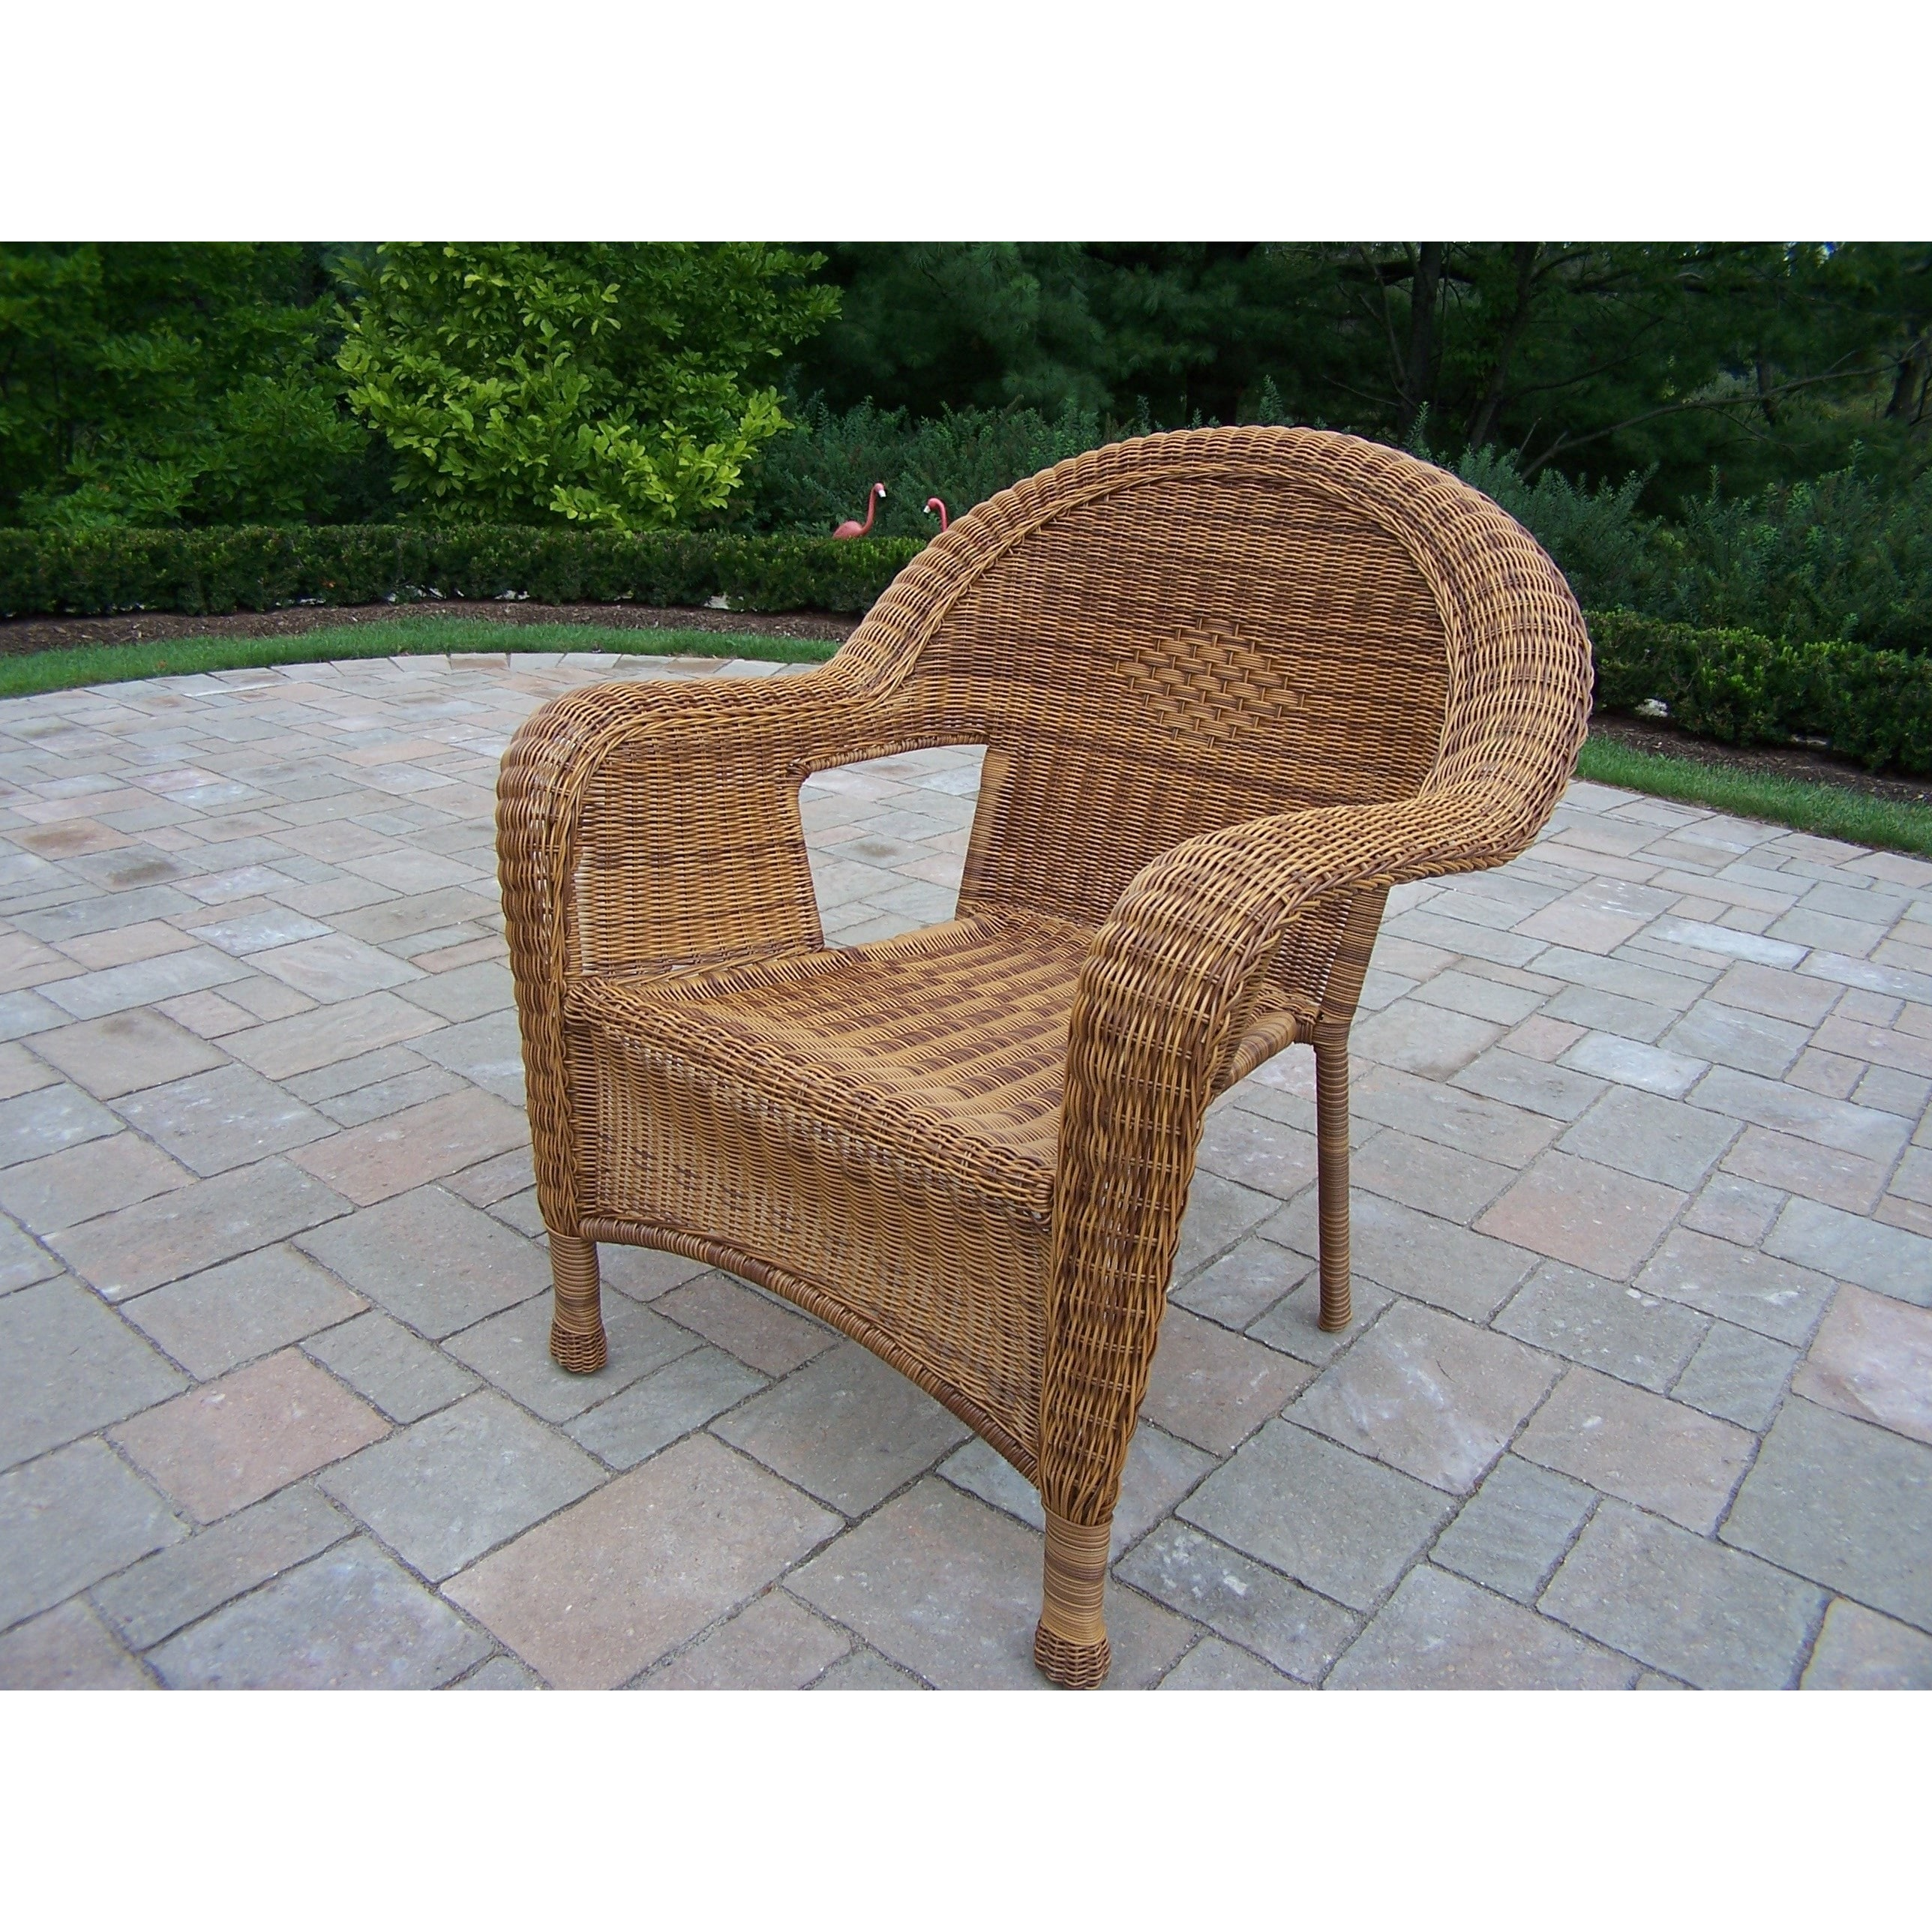 comfortable wicker chairs helinox one chair shop calabasas pair of resin arm 2 pack on sale free shipping today overstock com 13205382